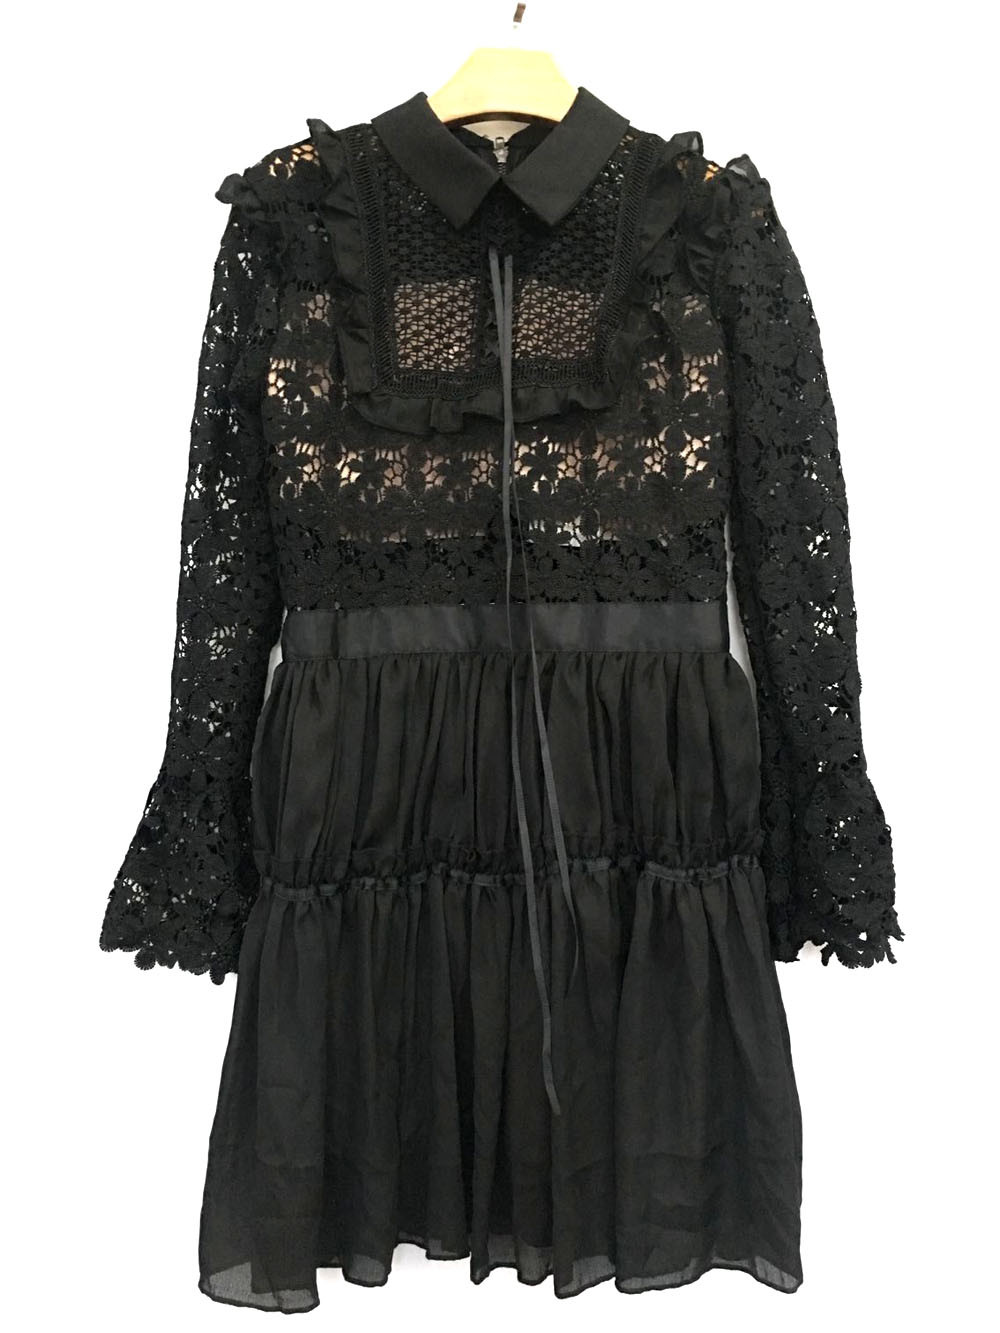 Lace Patchwork Vintage Design Flare Sleeve Mini Dress